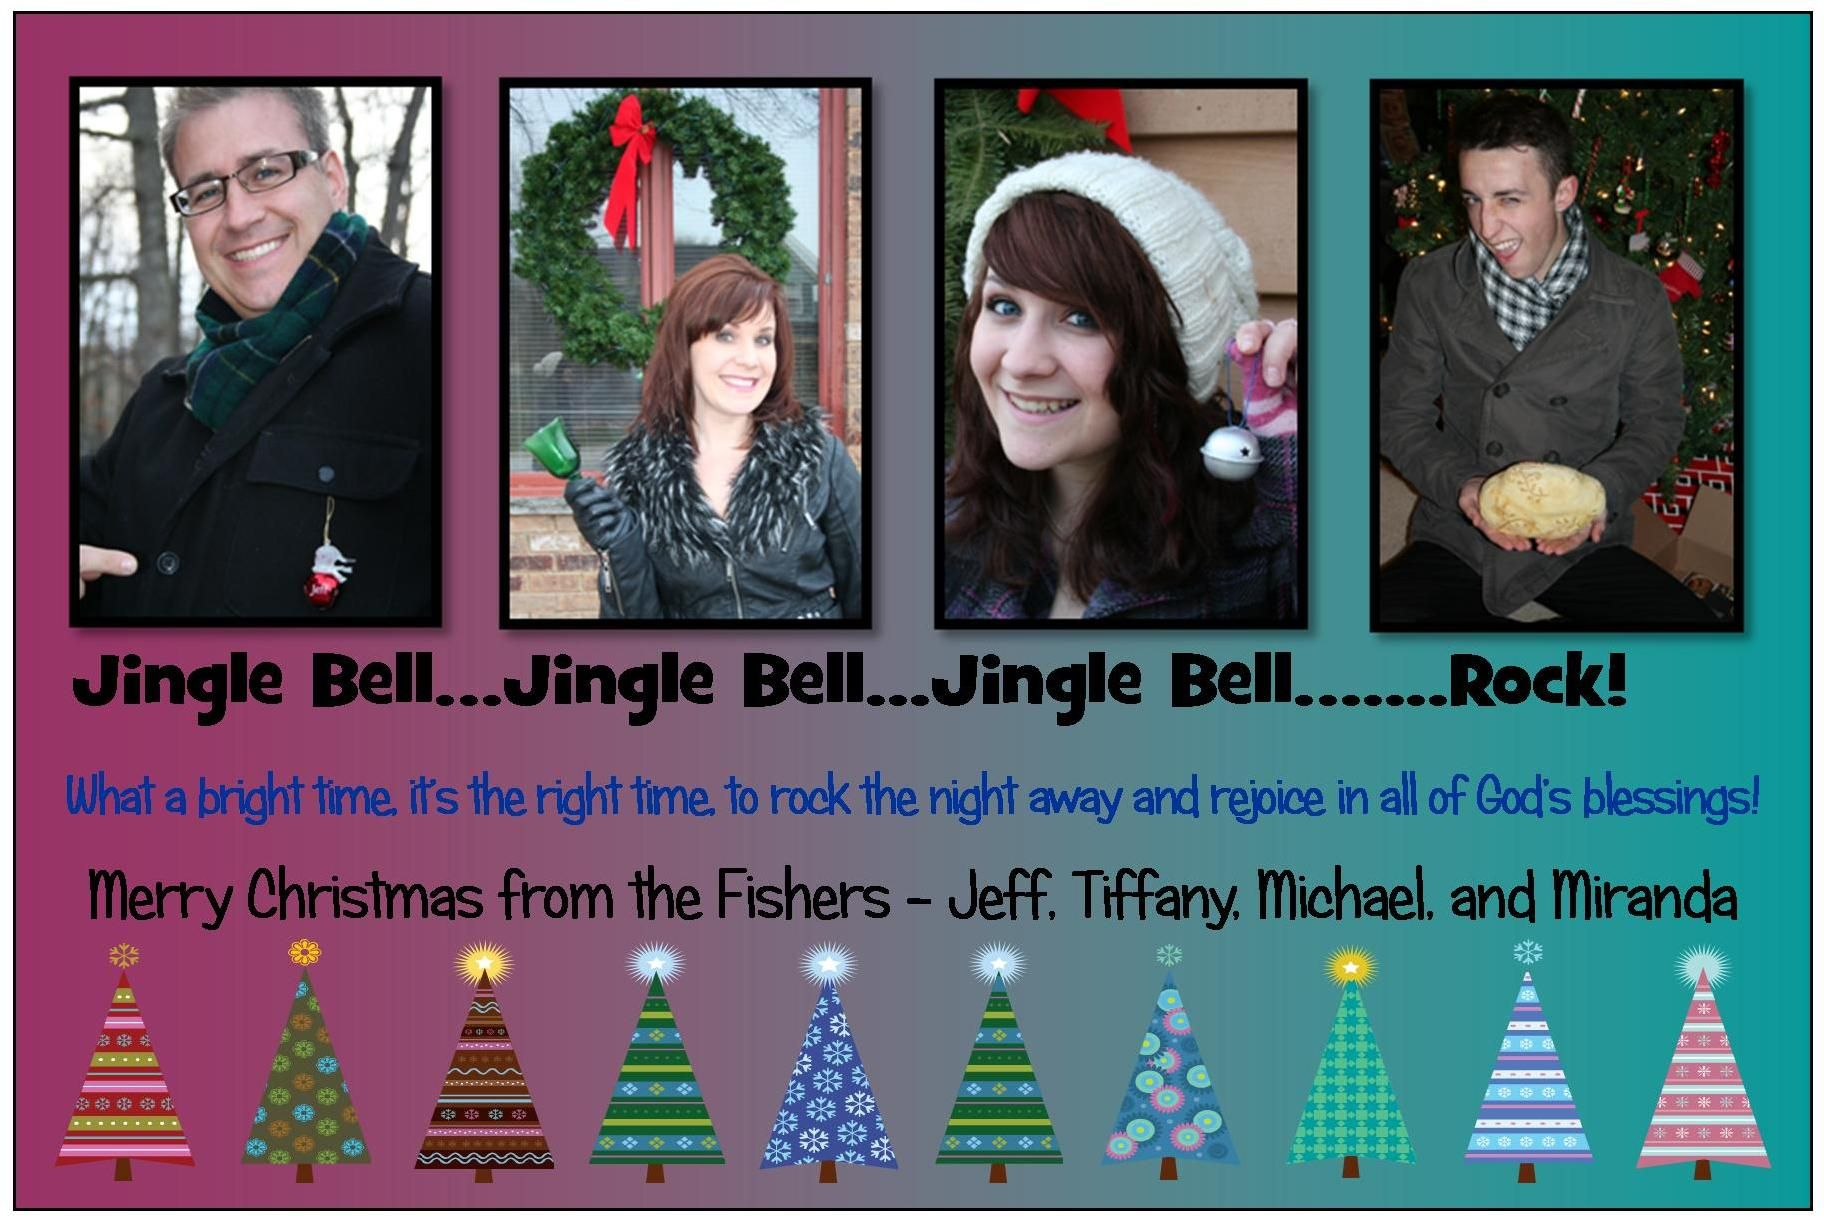 Merry Christmas from the Fisher clan!